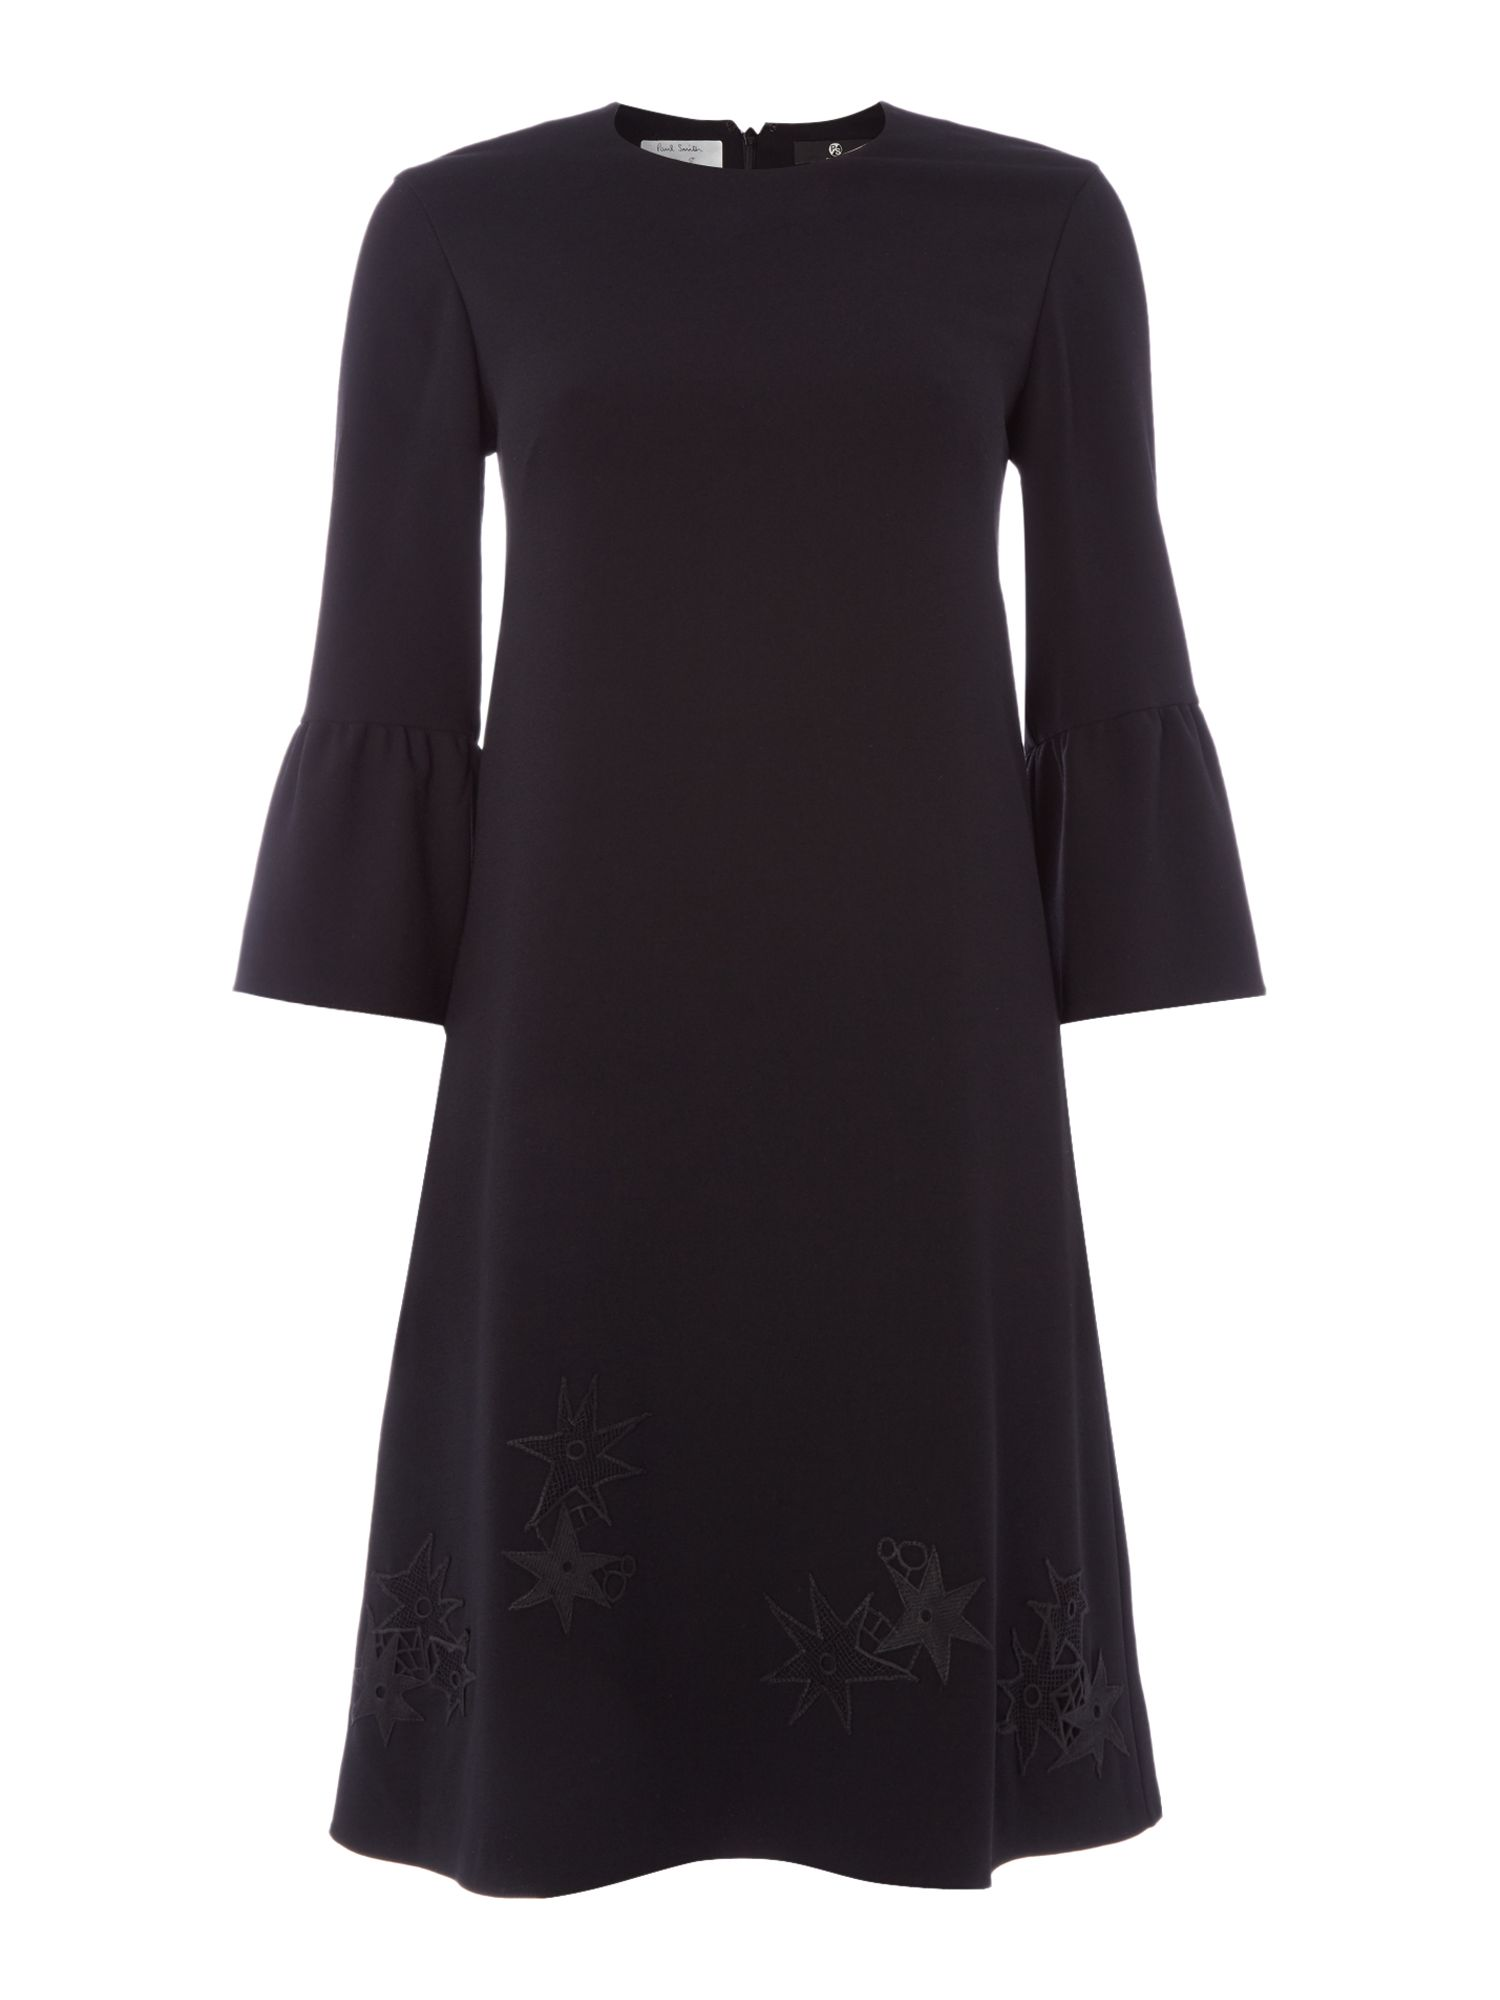 PS By Paul Smith Star detail black dress, Black